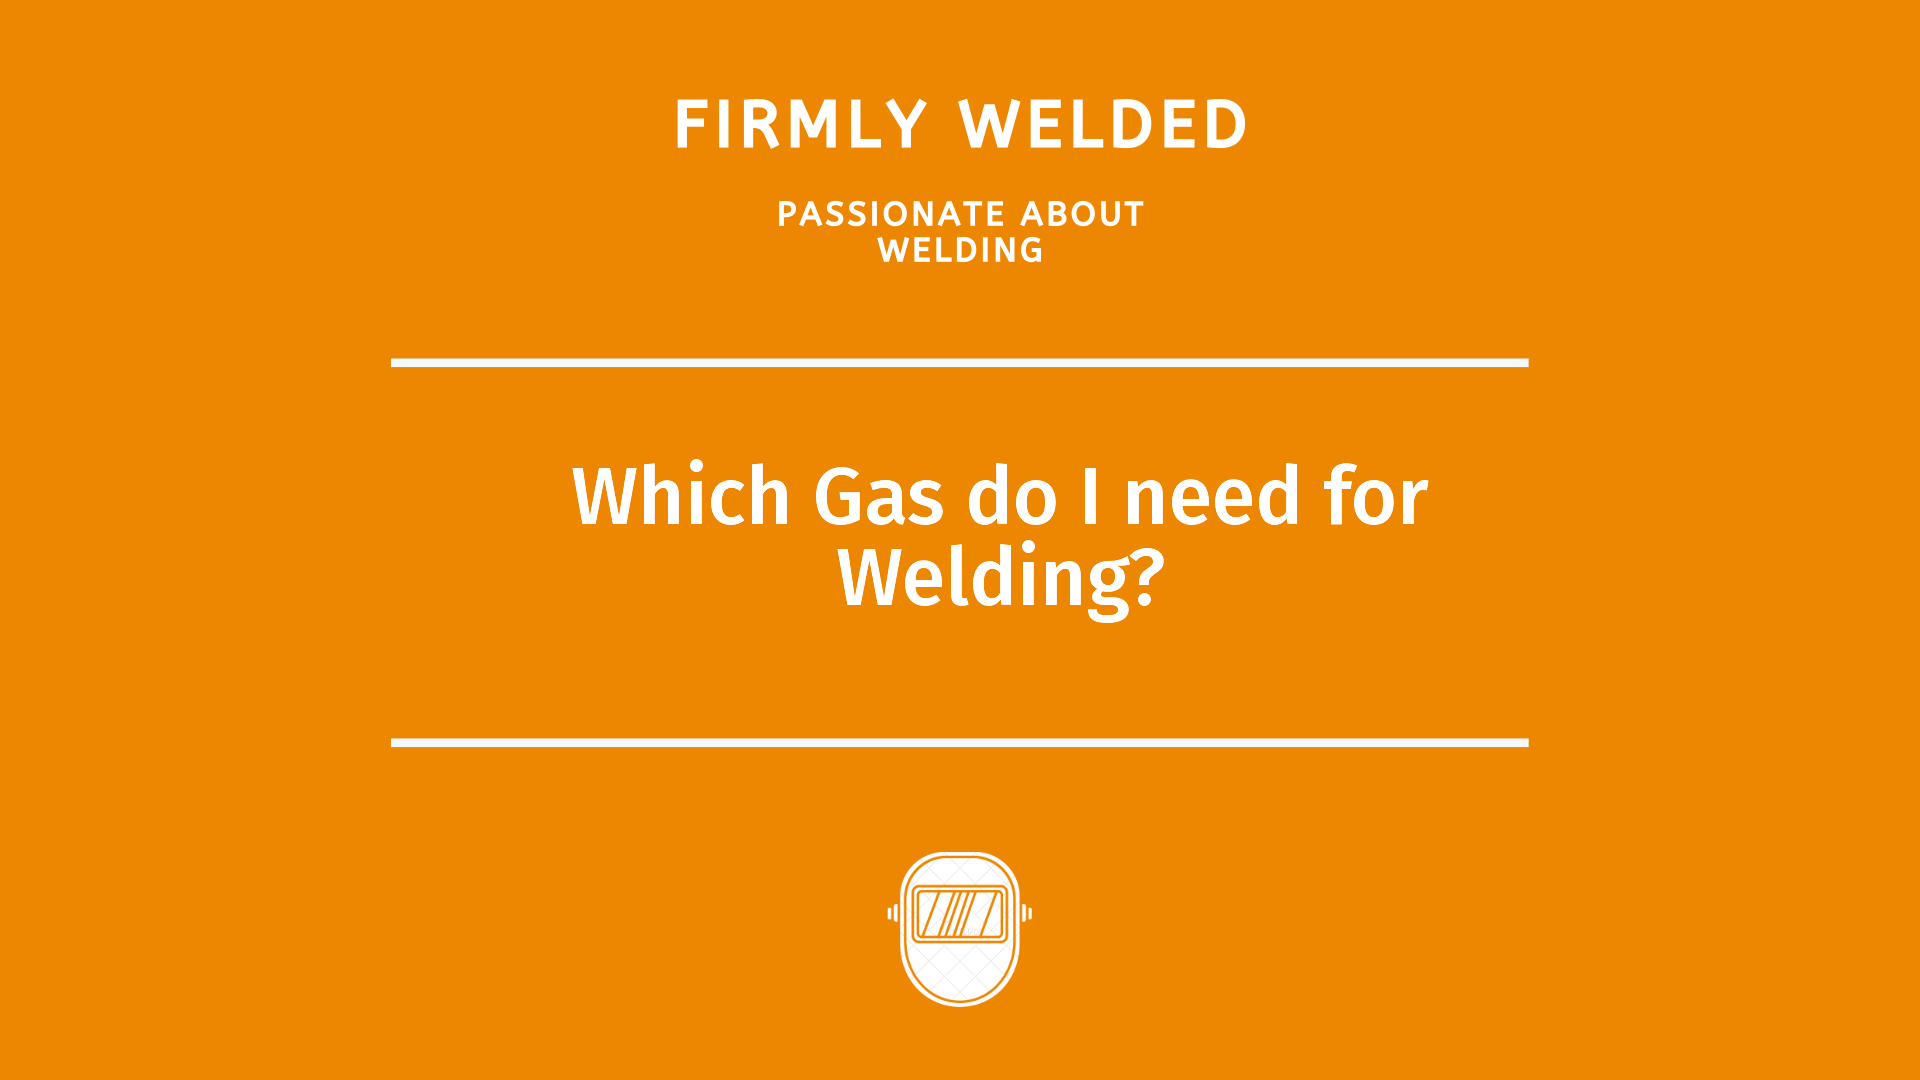 Which Gas do I need for Welding?